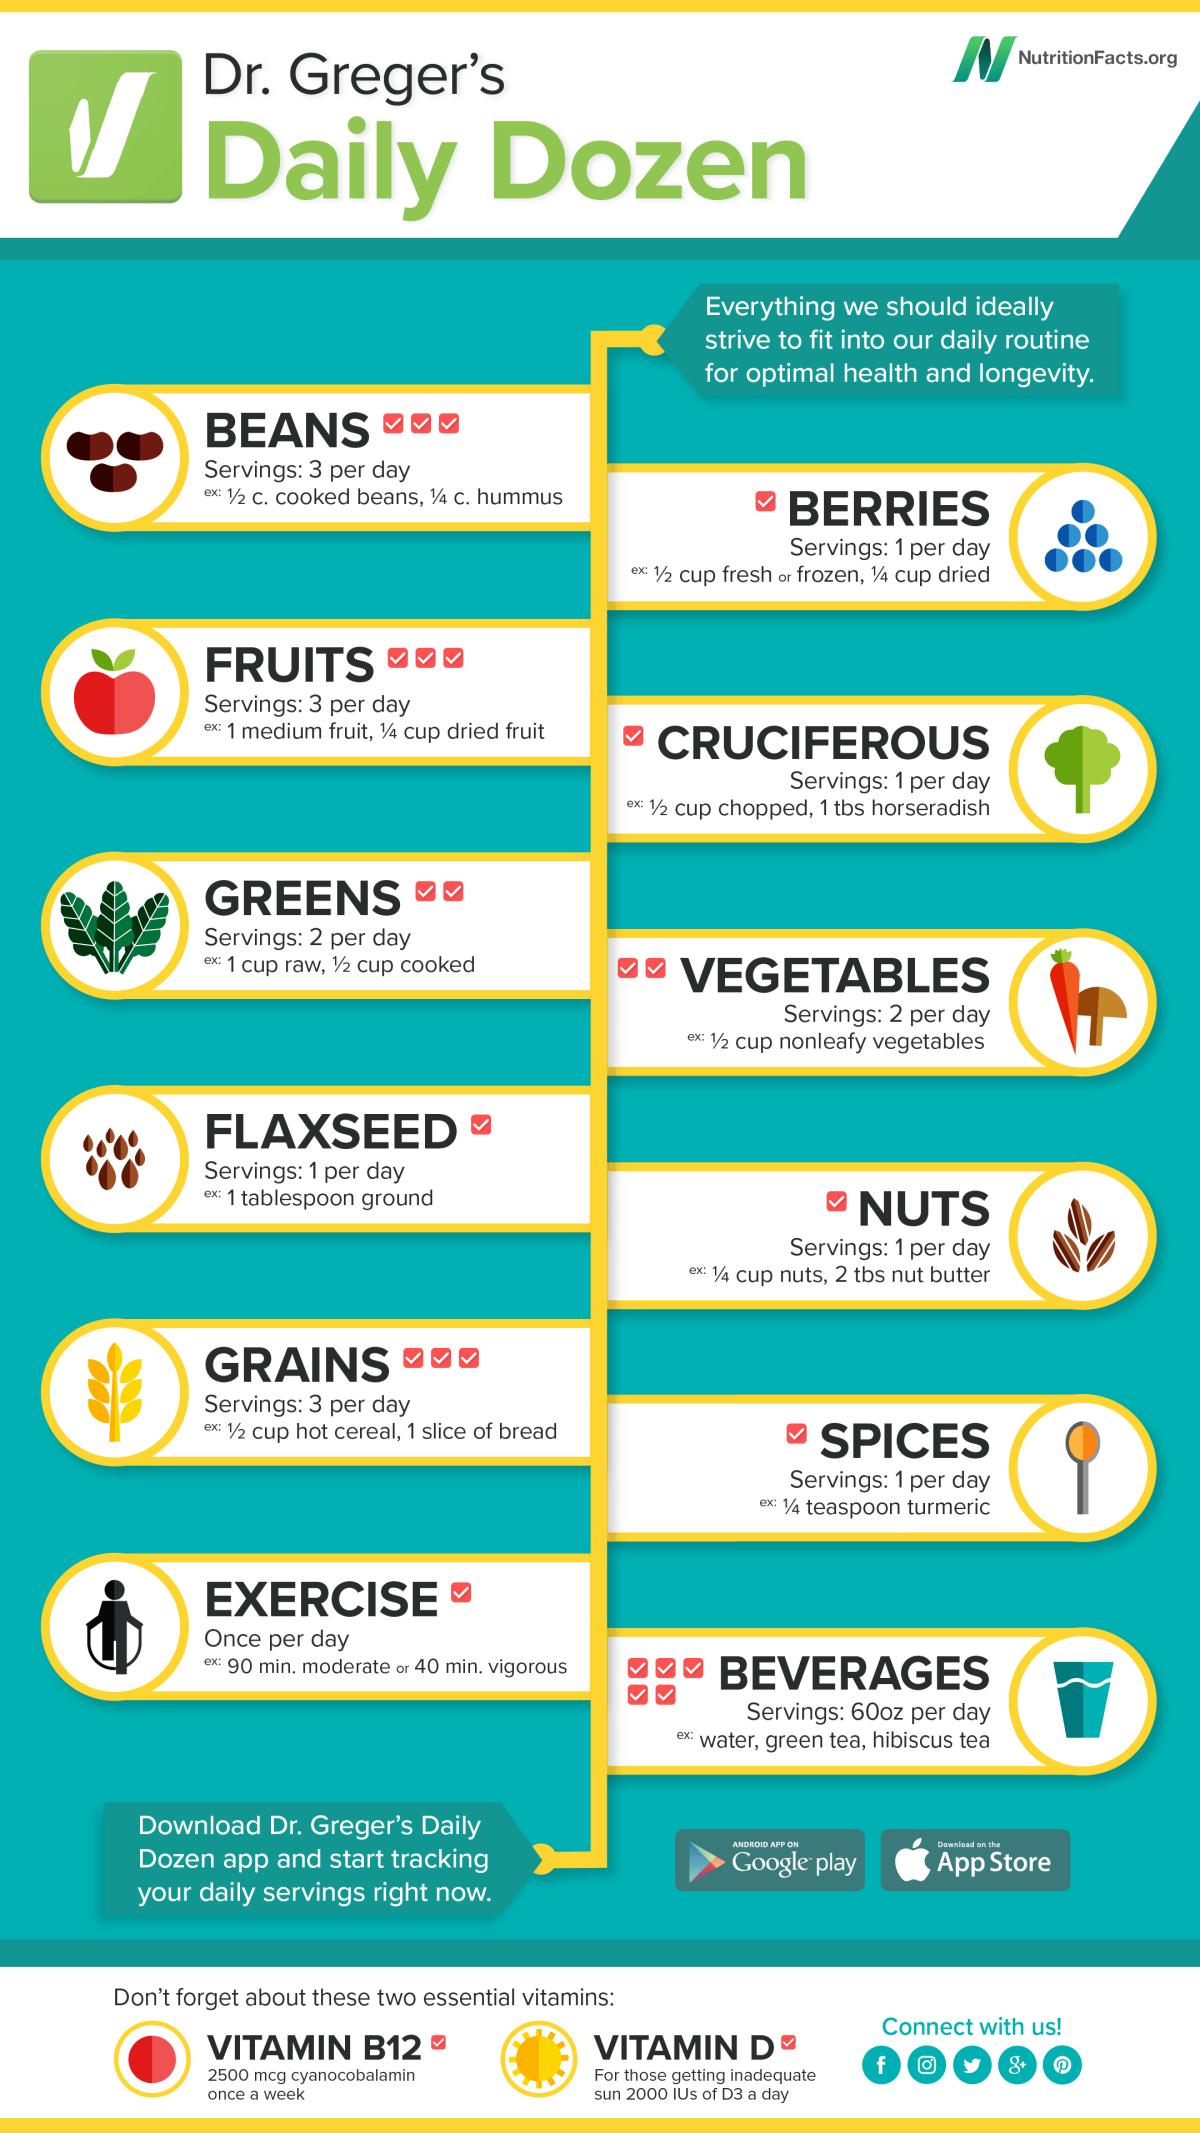 The Daily Dozen Chart from NutritionFacts.org lists the healthiest foods to eat on a whole food plant based diet.